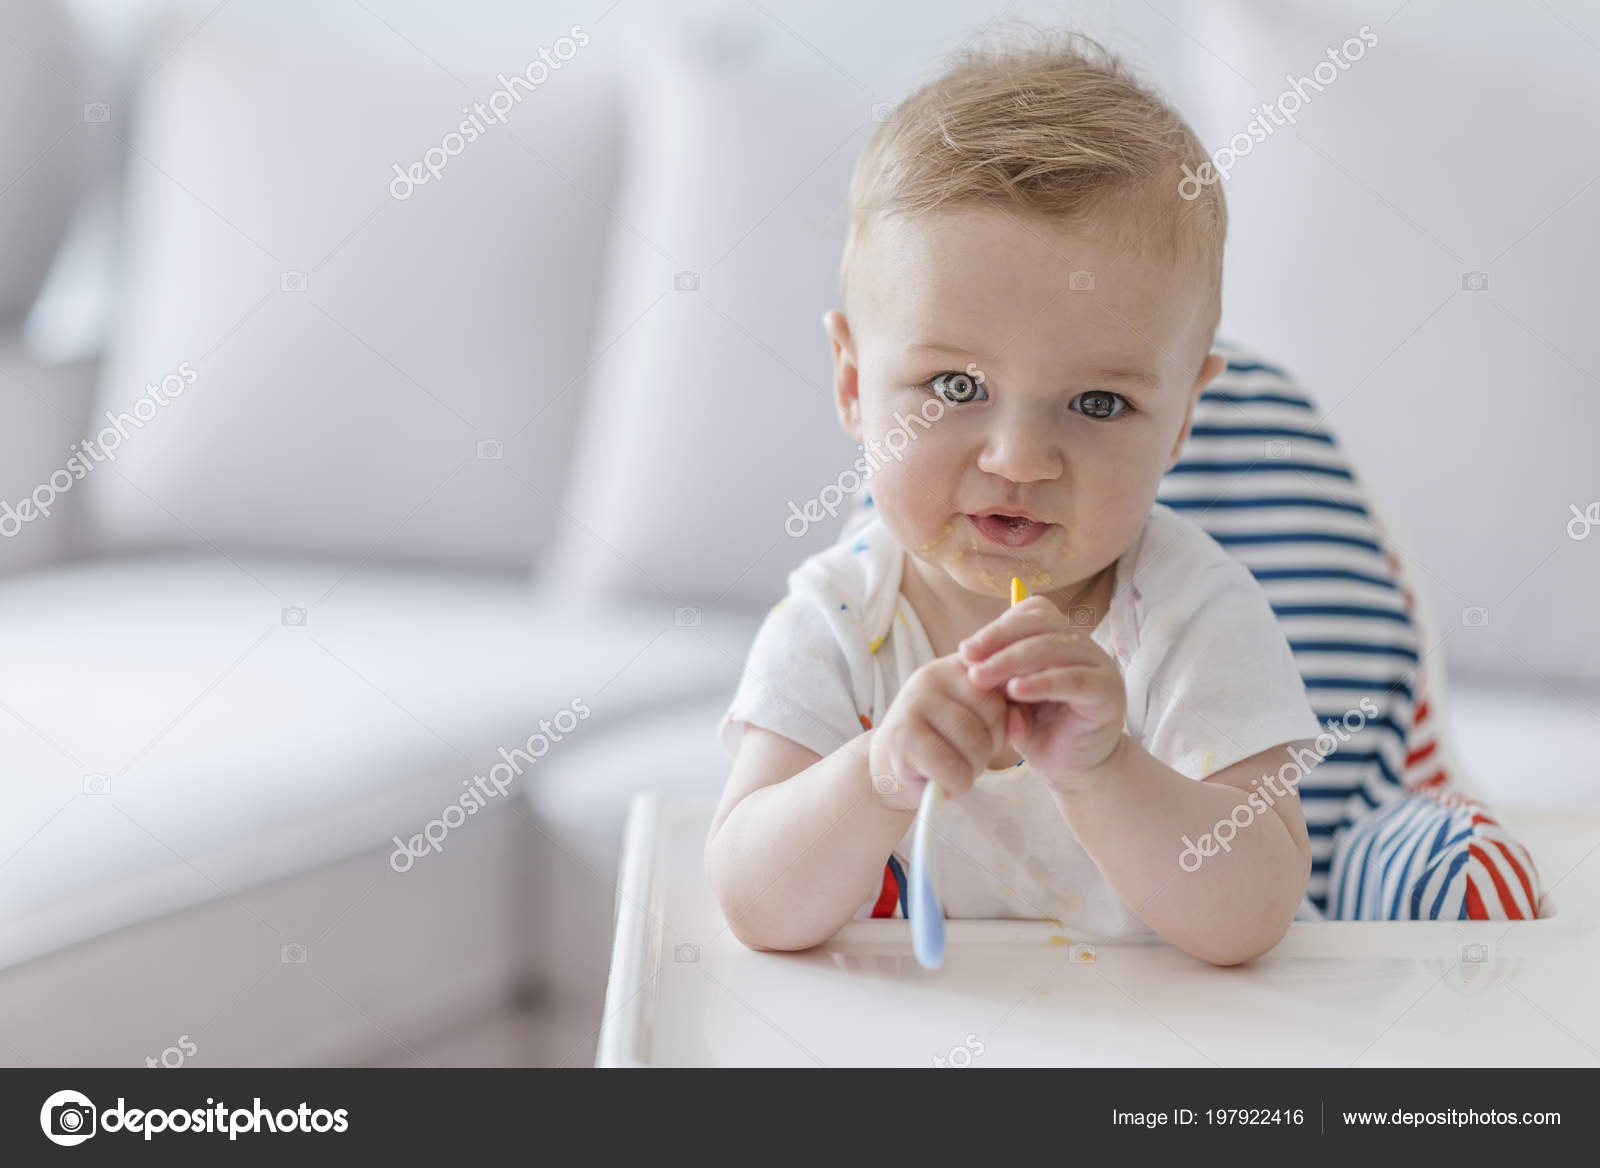 high chairs for small babies affordable desk baby sitting highchair all messy eating orange food spoon in with mouth child sits on a chair and